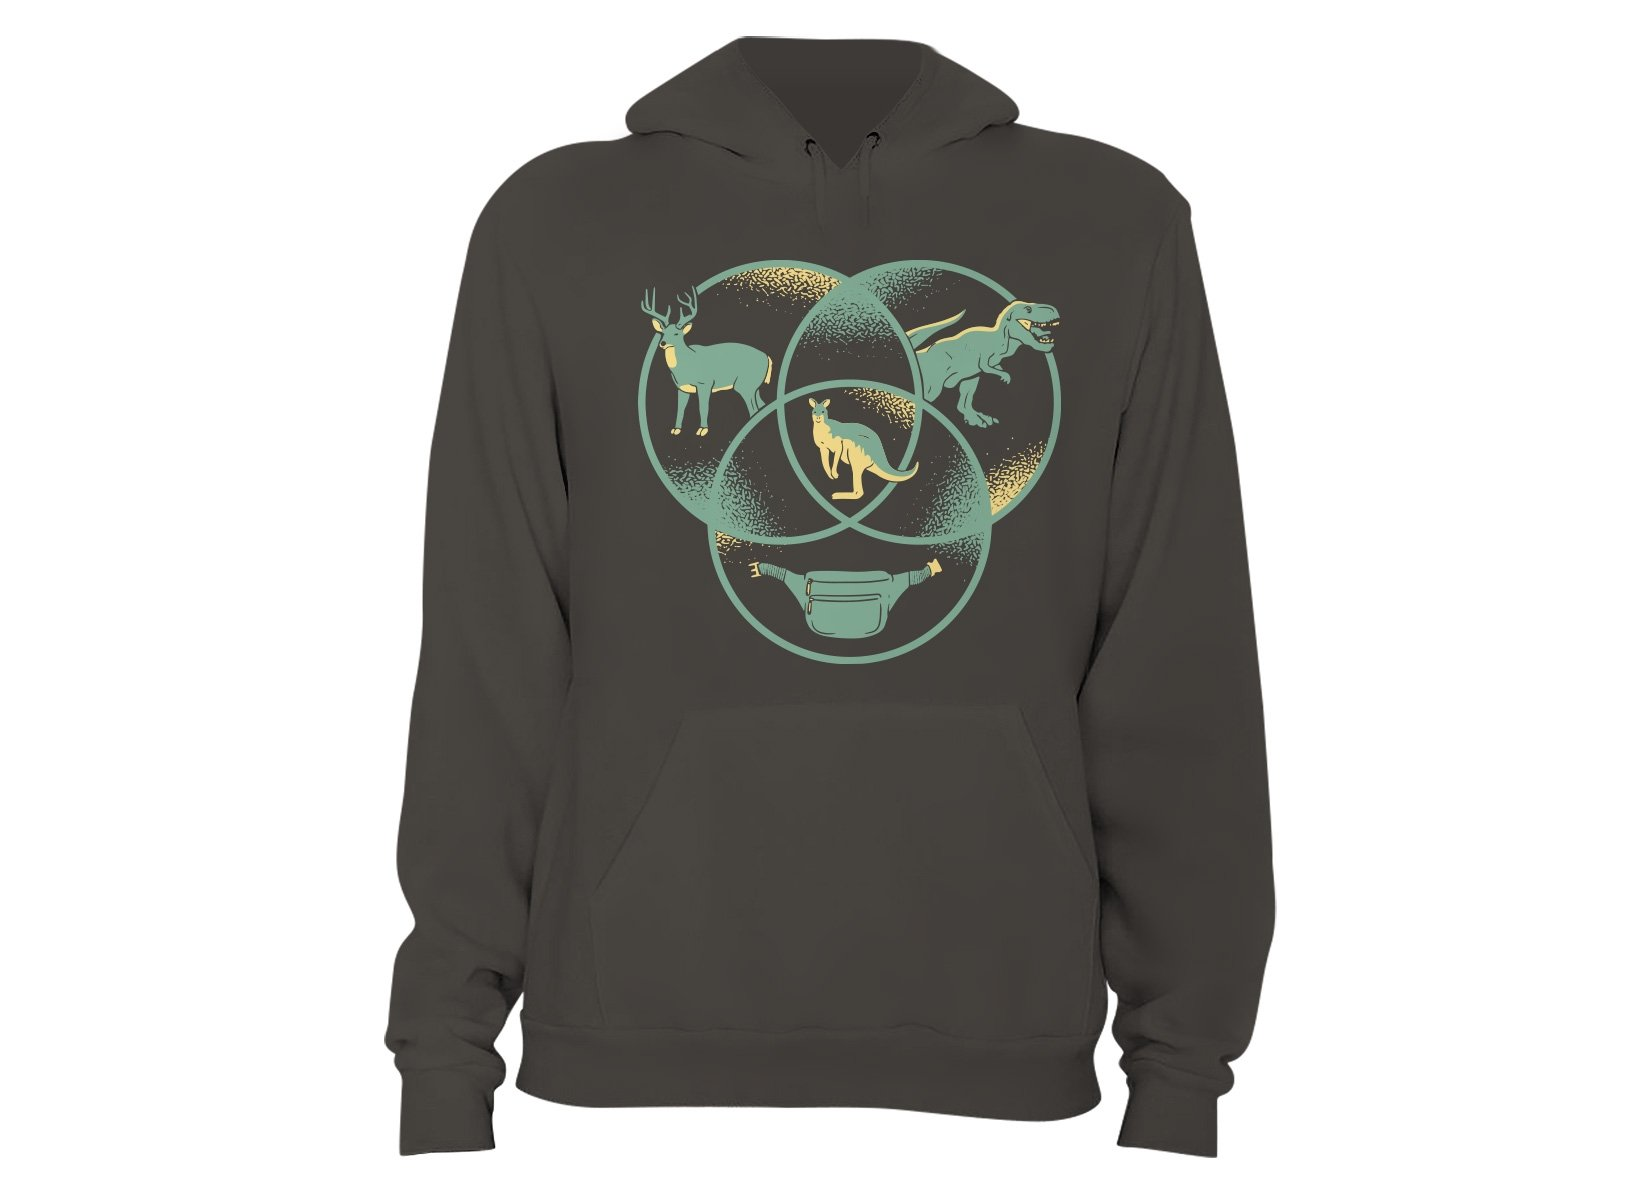 Kangaroo Venn Diagram on Hoodie